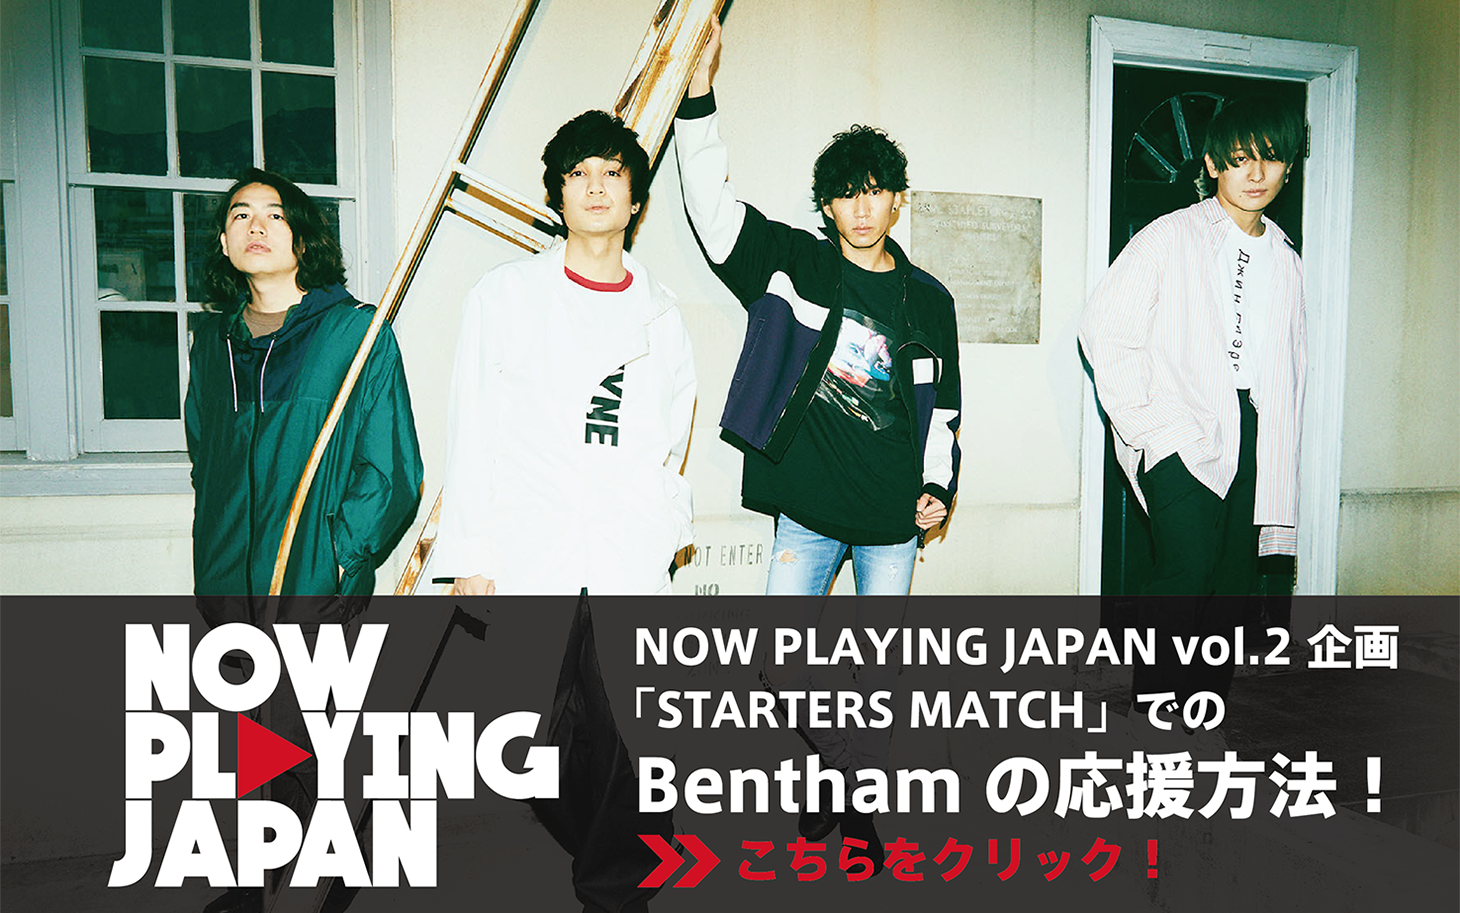 ★NOW PLAYING JAPAN vol.2 企画「STARTERS MATCH」でのBenthamの応援方法★